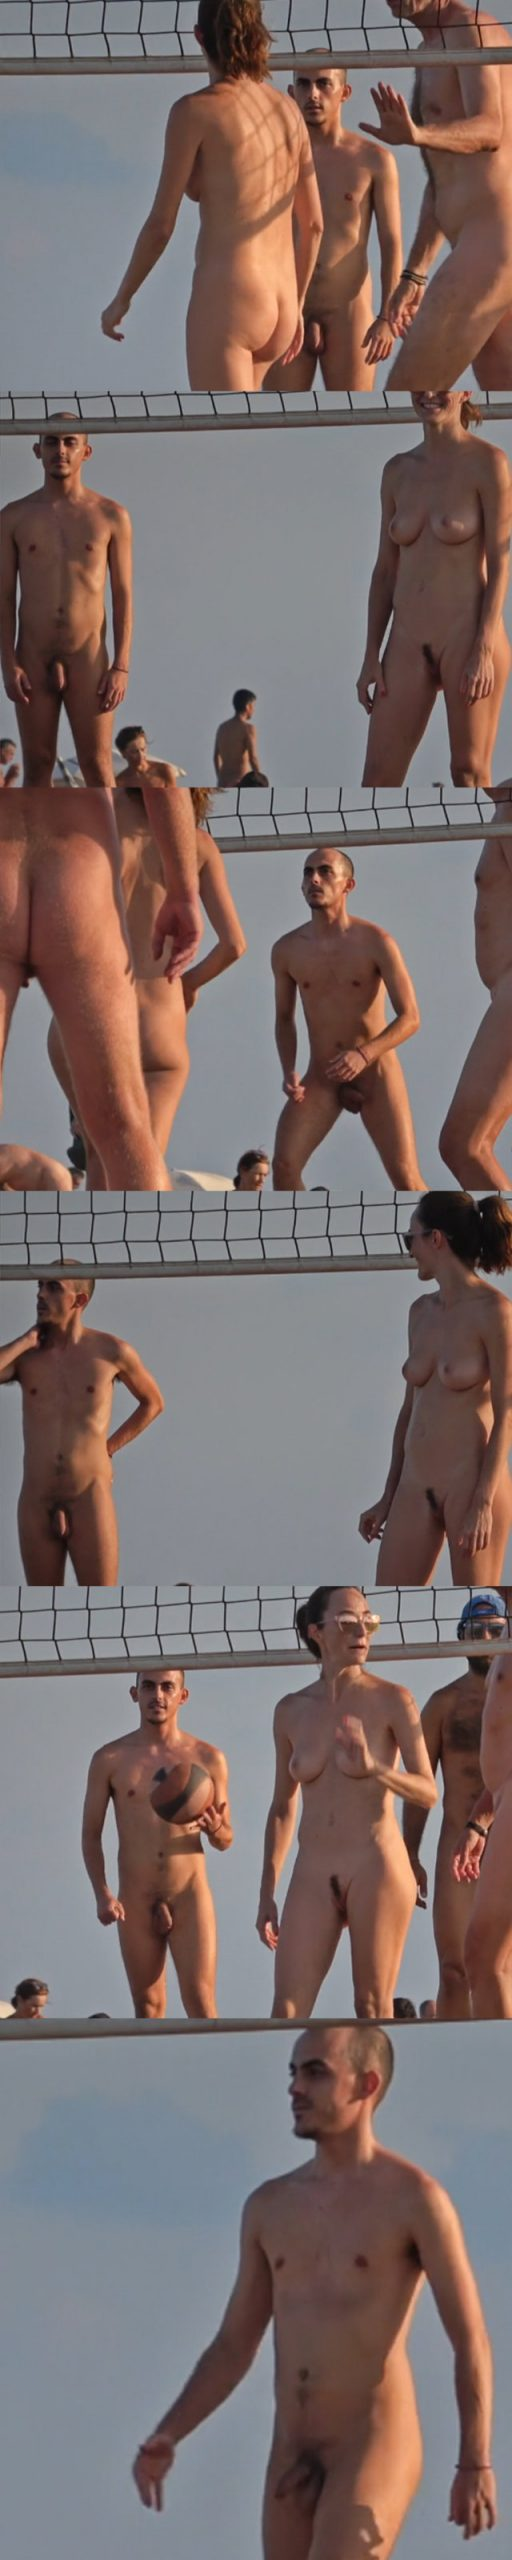 nudist guy caught playing beach volley